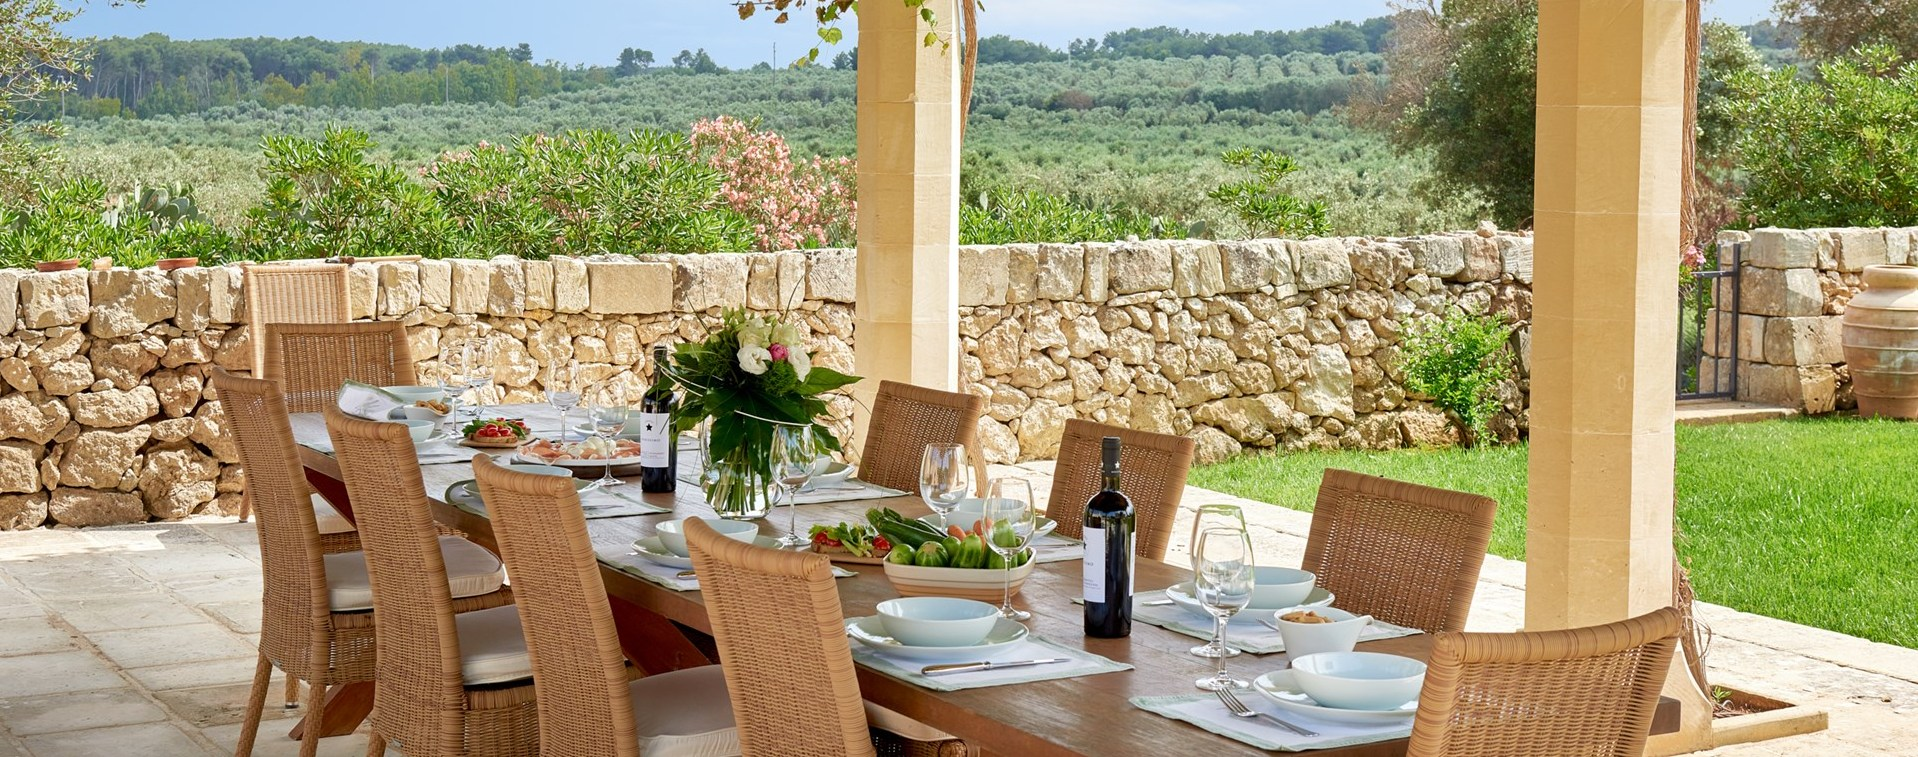 masseria-coloniale-outdoor-dining